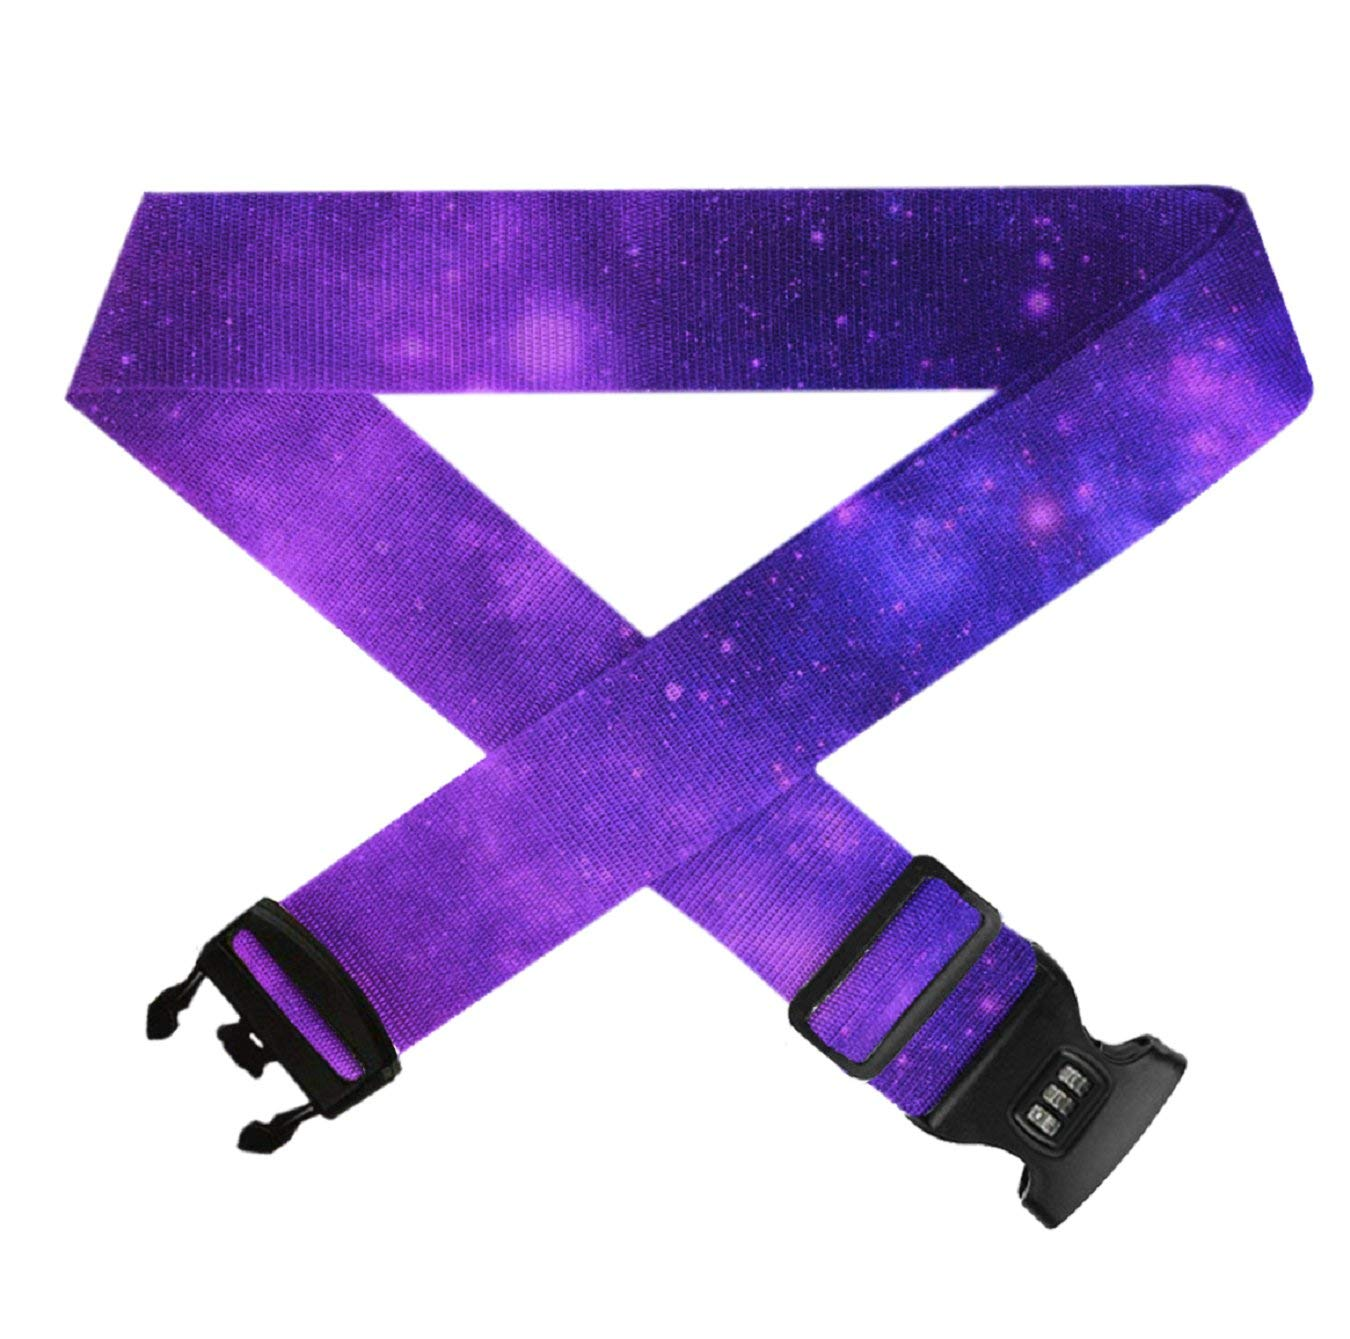 Brilliant Purple Galaxy 1 PC Durable Suitcase Straps TSA Approved Lock for Travel Bag Accessories GLORY ART Adjustable Travel Luggage Belts